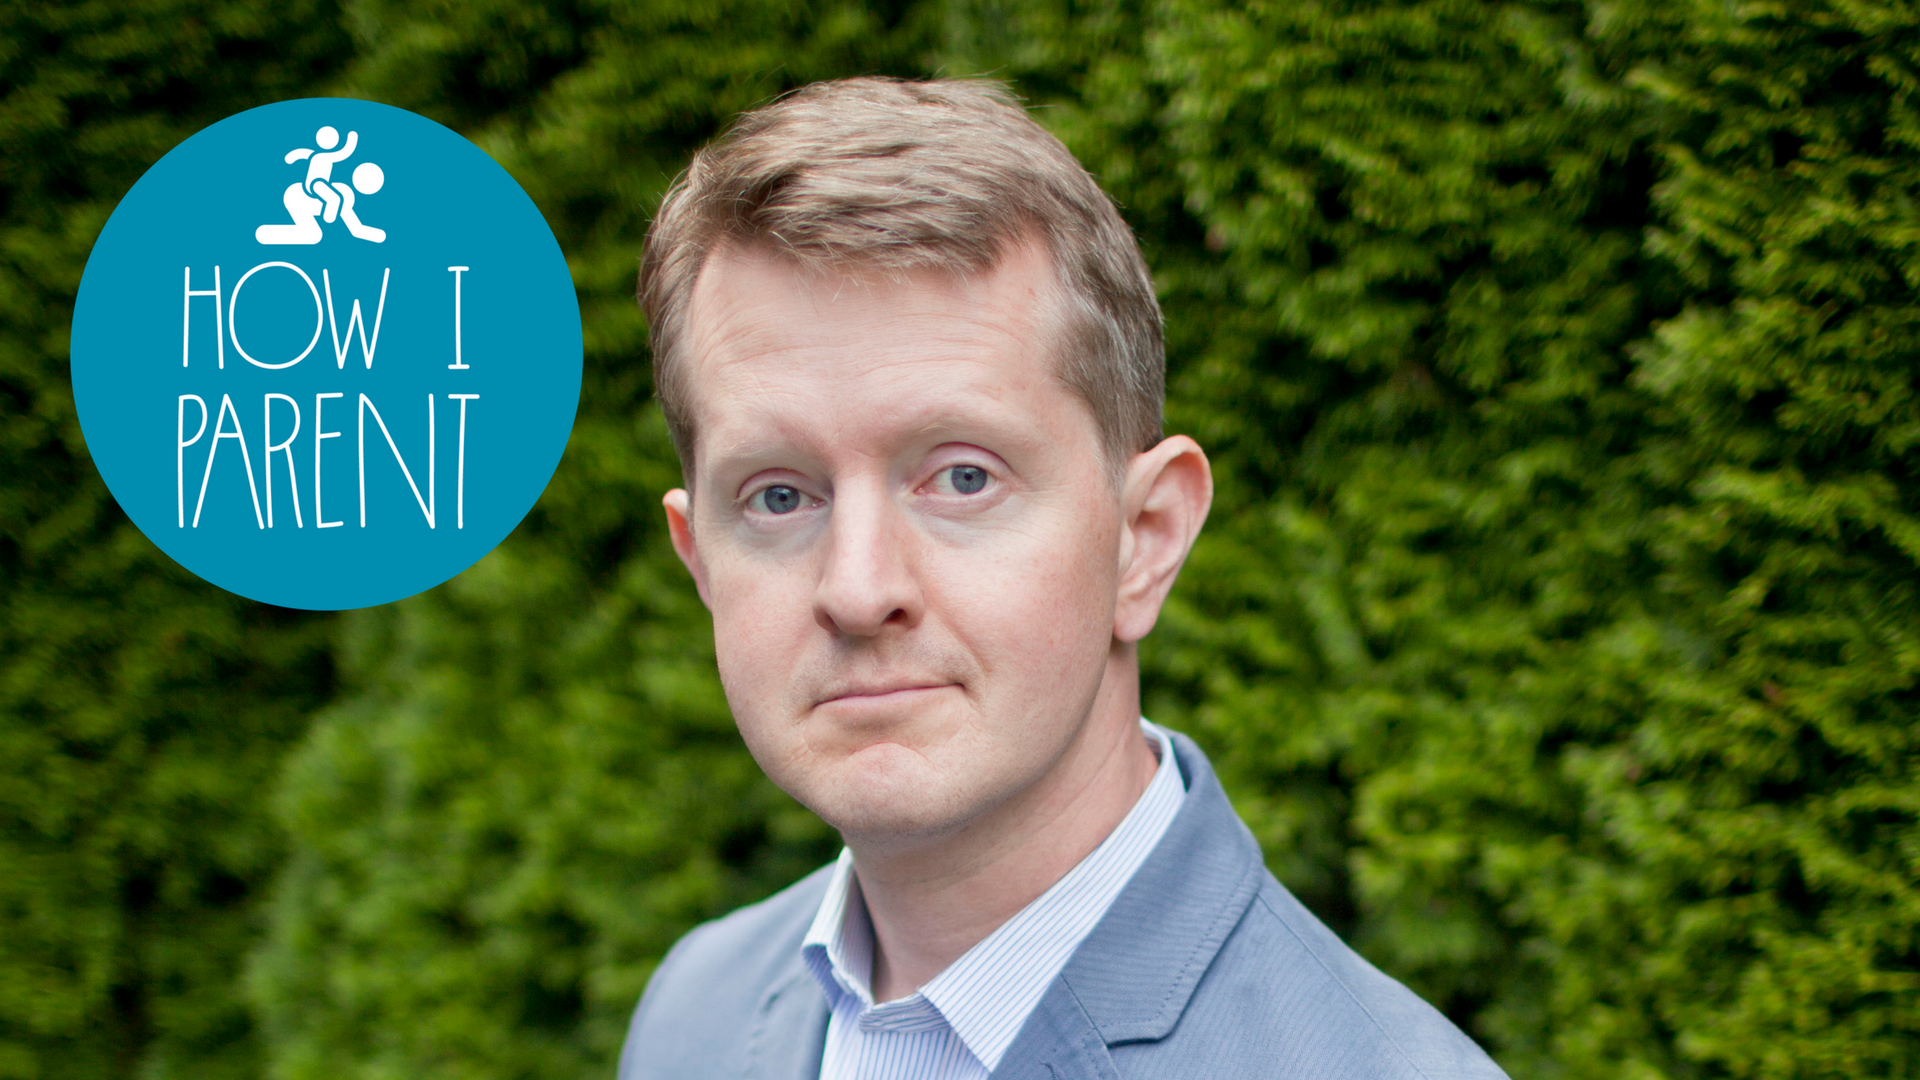 I'm Ken Jennings, Author And 'Jeopardy' Champ, And This Is How I Parent